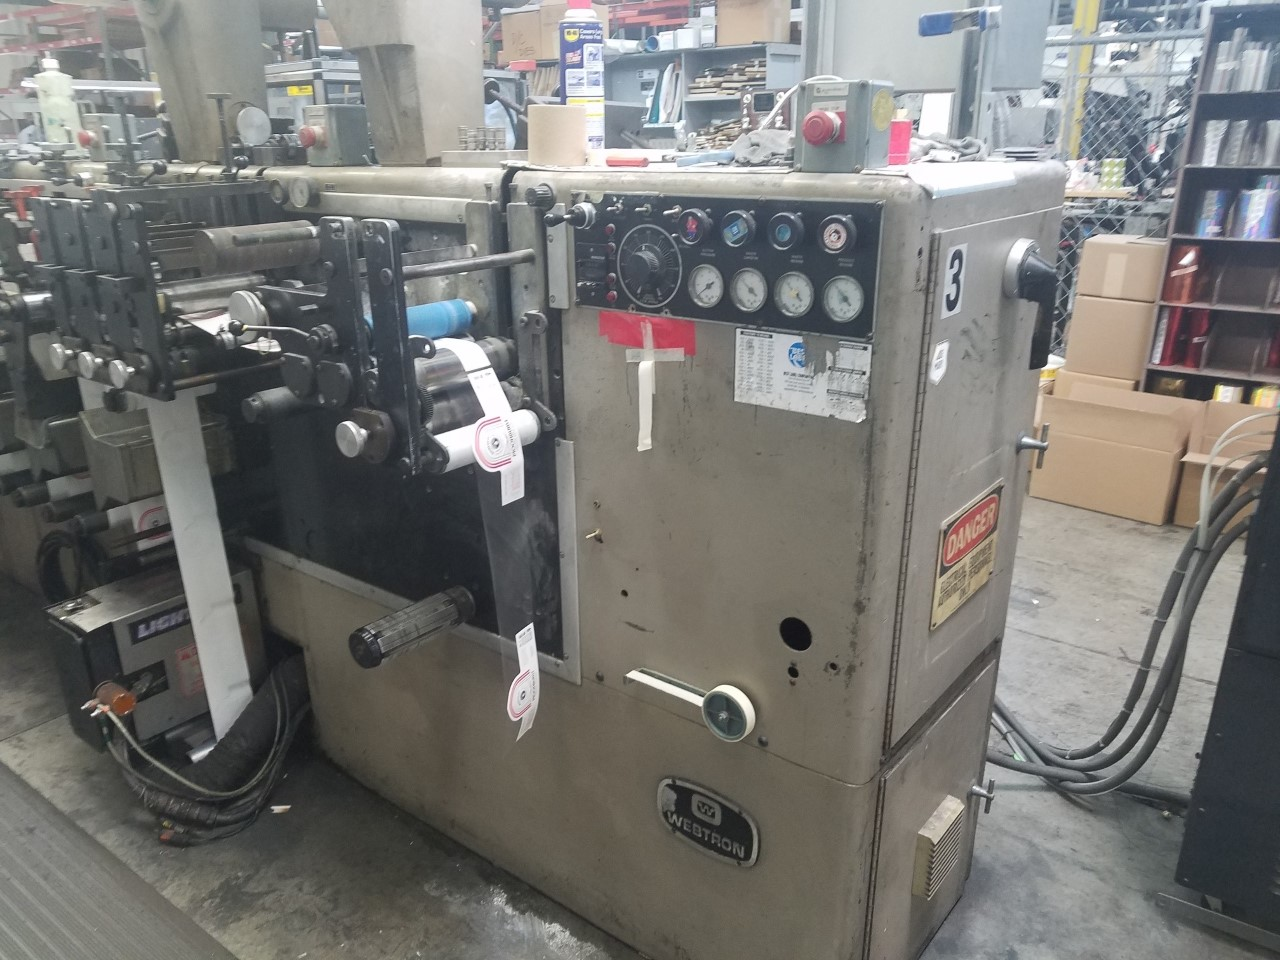 Webtron 750 - Used Flexo Printing Presses and Used Flexographic Equipment-2